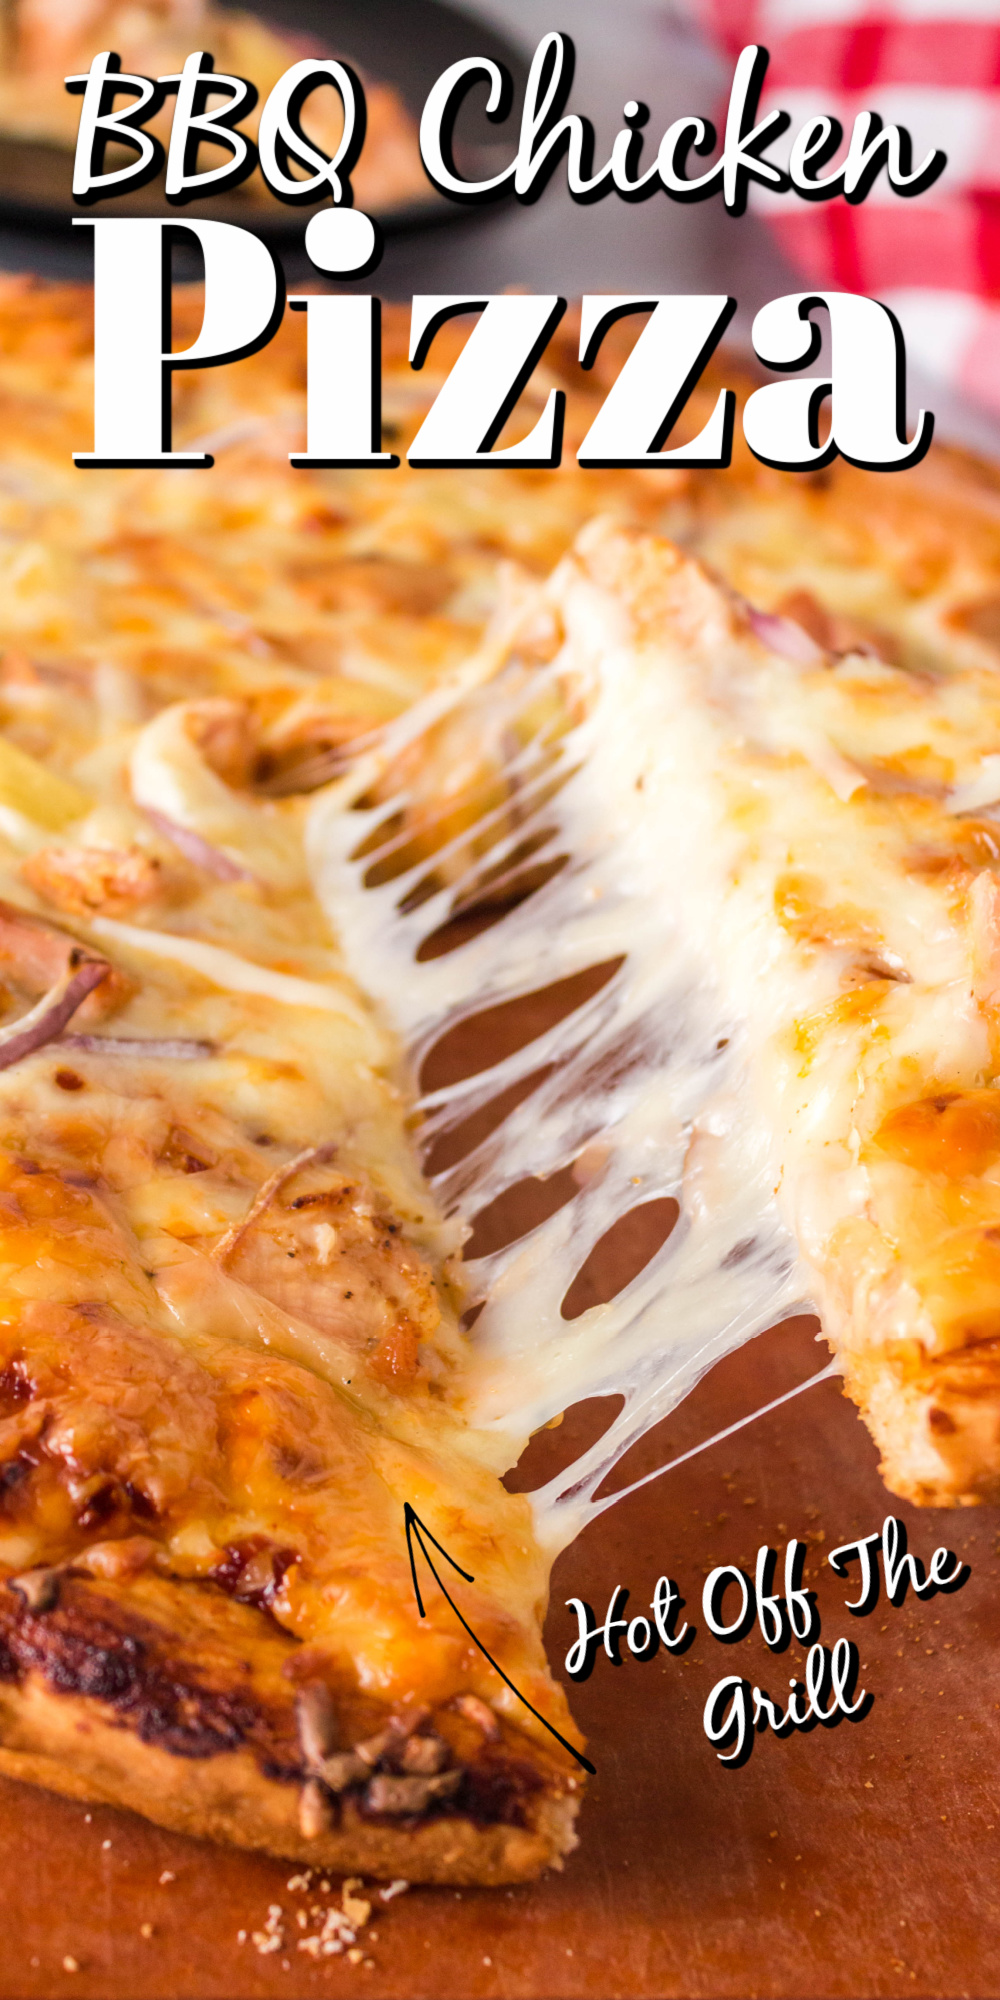 BBQ Chicken Pizza on the grill? Oh yes! This grilled pizza is amazing! With a crispy crust, wonderful barbecue sauce base, chicken, and pineapples, you will think you are in Hawaii!! This pizza is better than take-out.